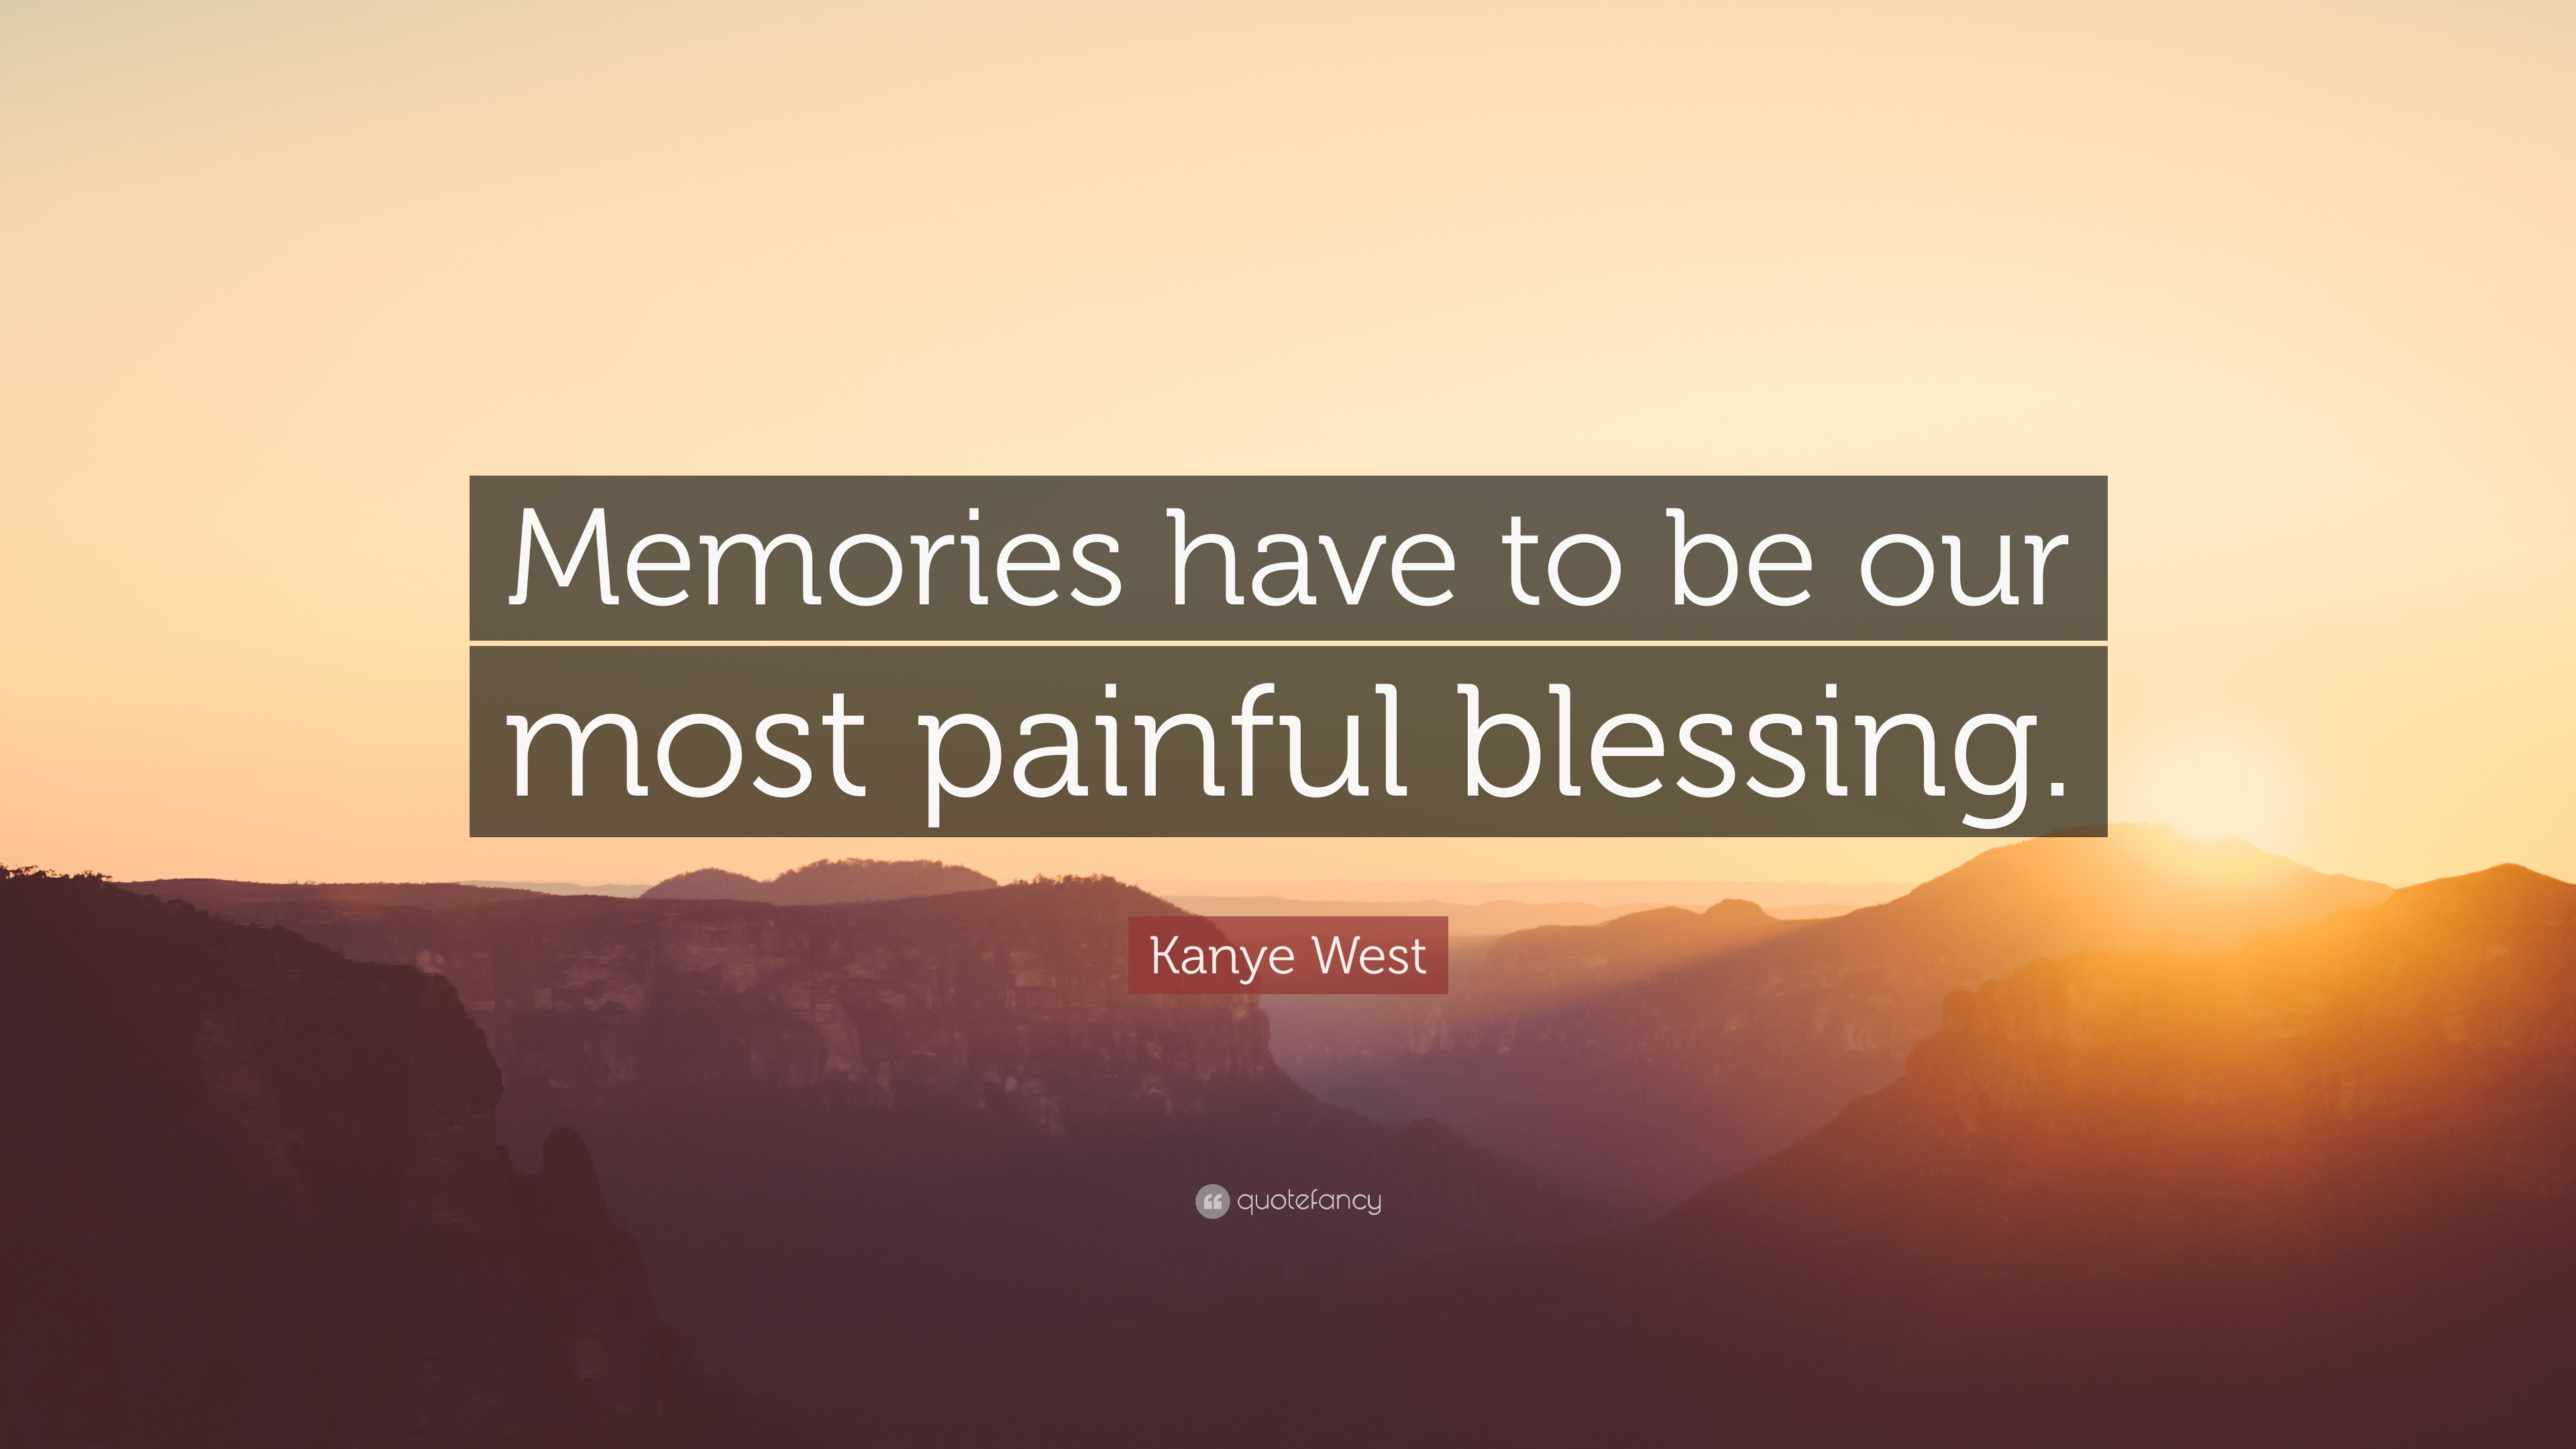 Kanye West Quote Memories Have To Be Our Most Painful Blessing